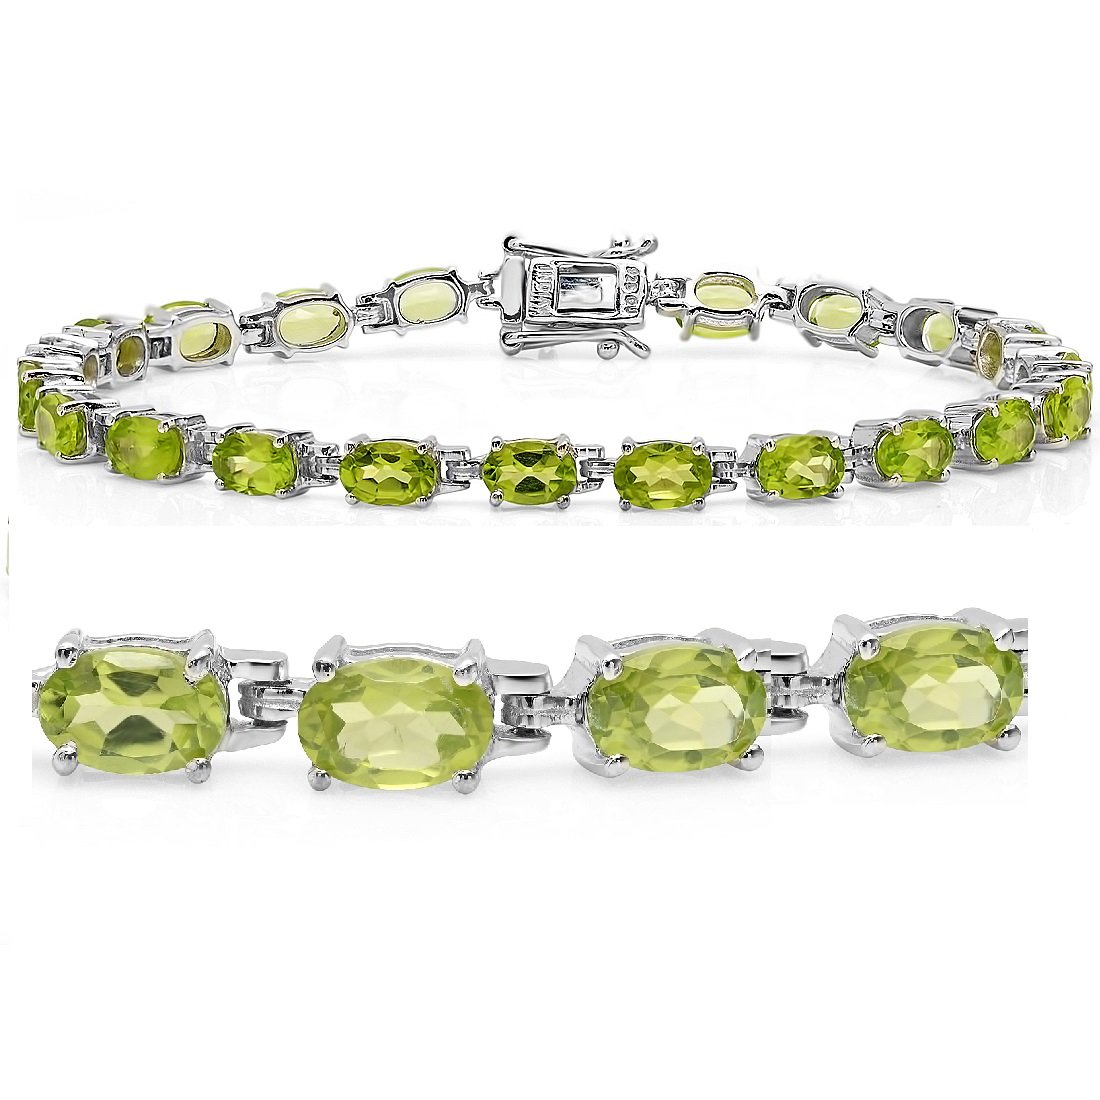 9ct tgw Peridot Tennis Bracelet in Sterling Silver 7 1/4 inch by Amanda Rose Collection